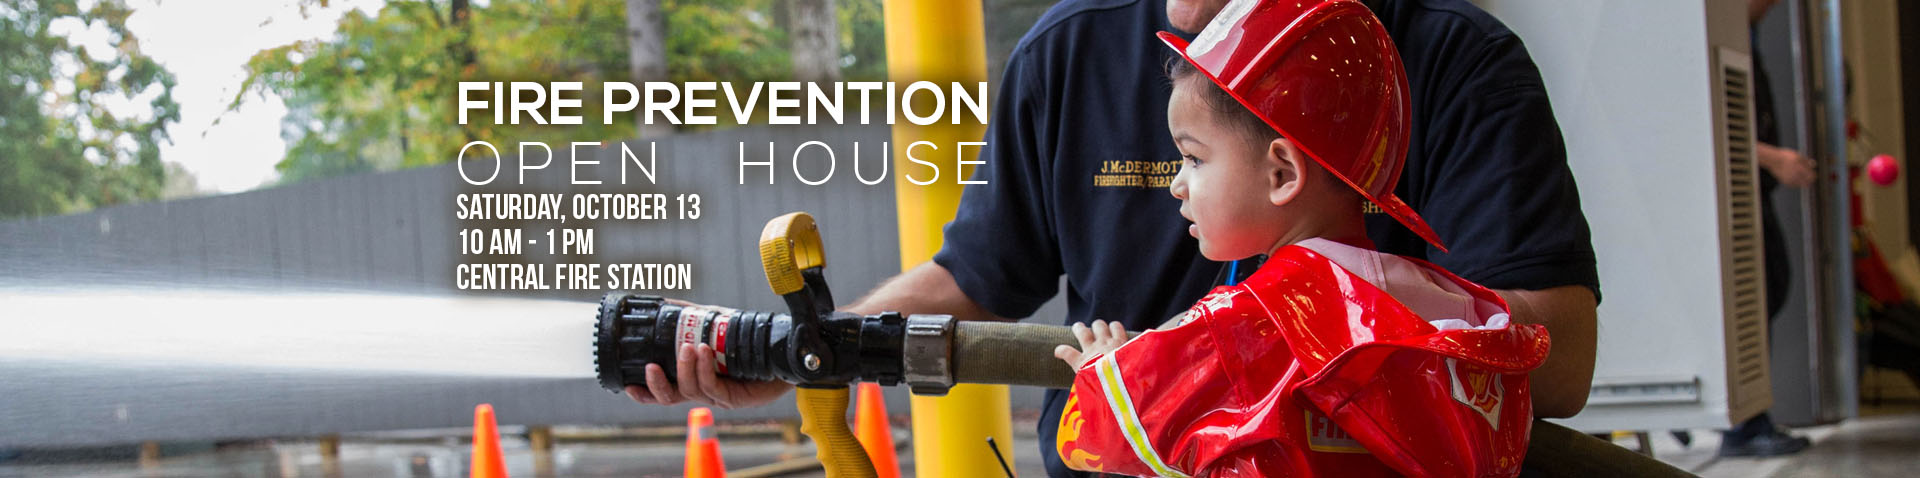 Fire Prevention Open House 2018